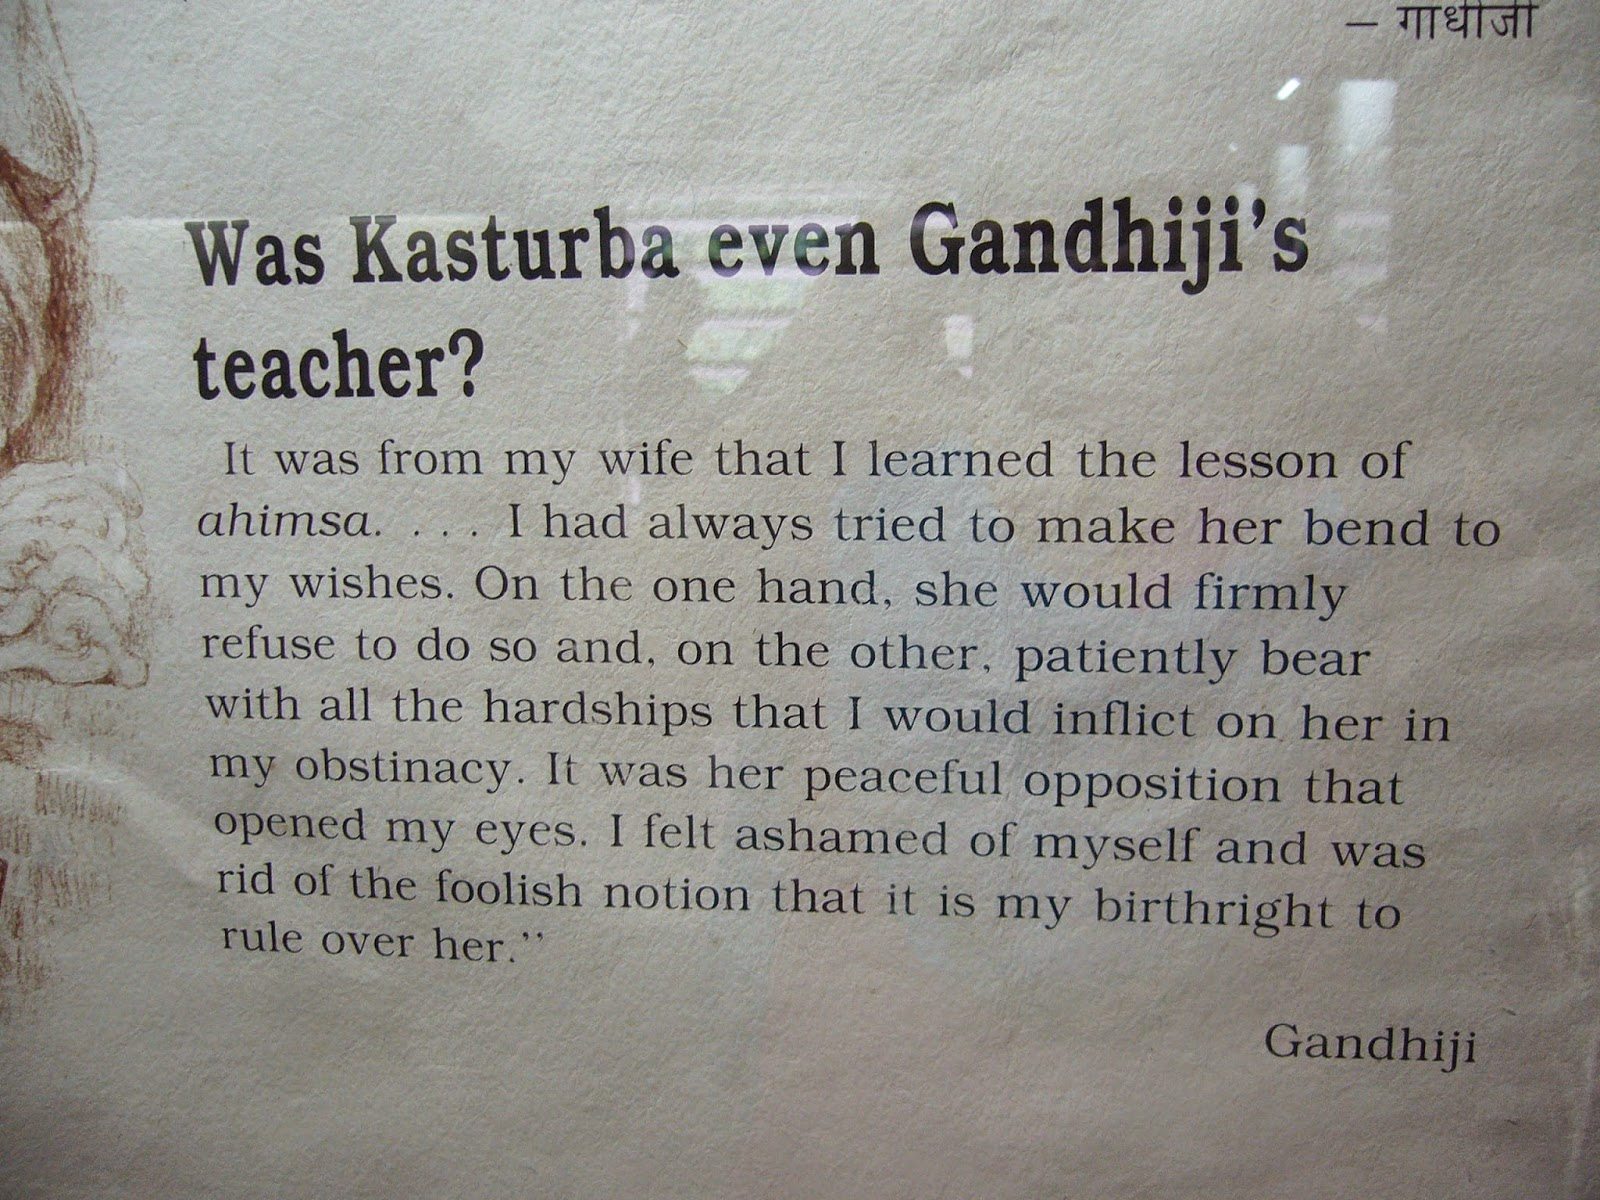 Gandhiji quote on Kasturba